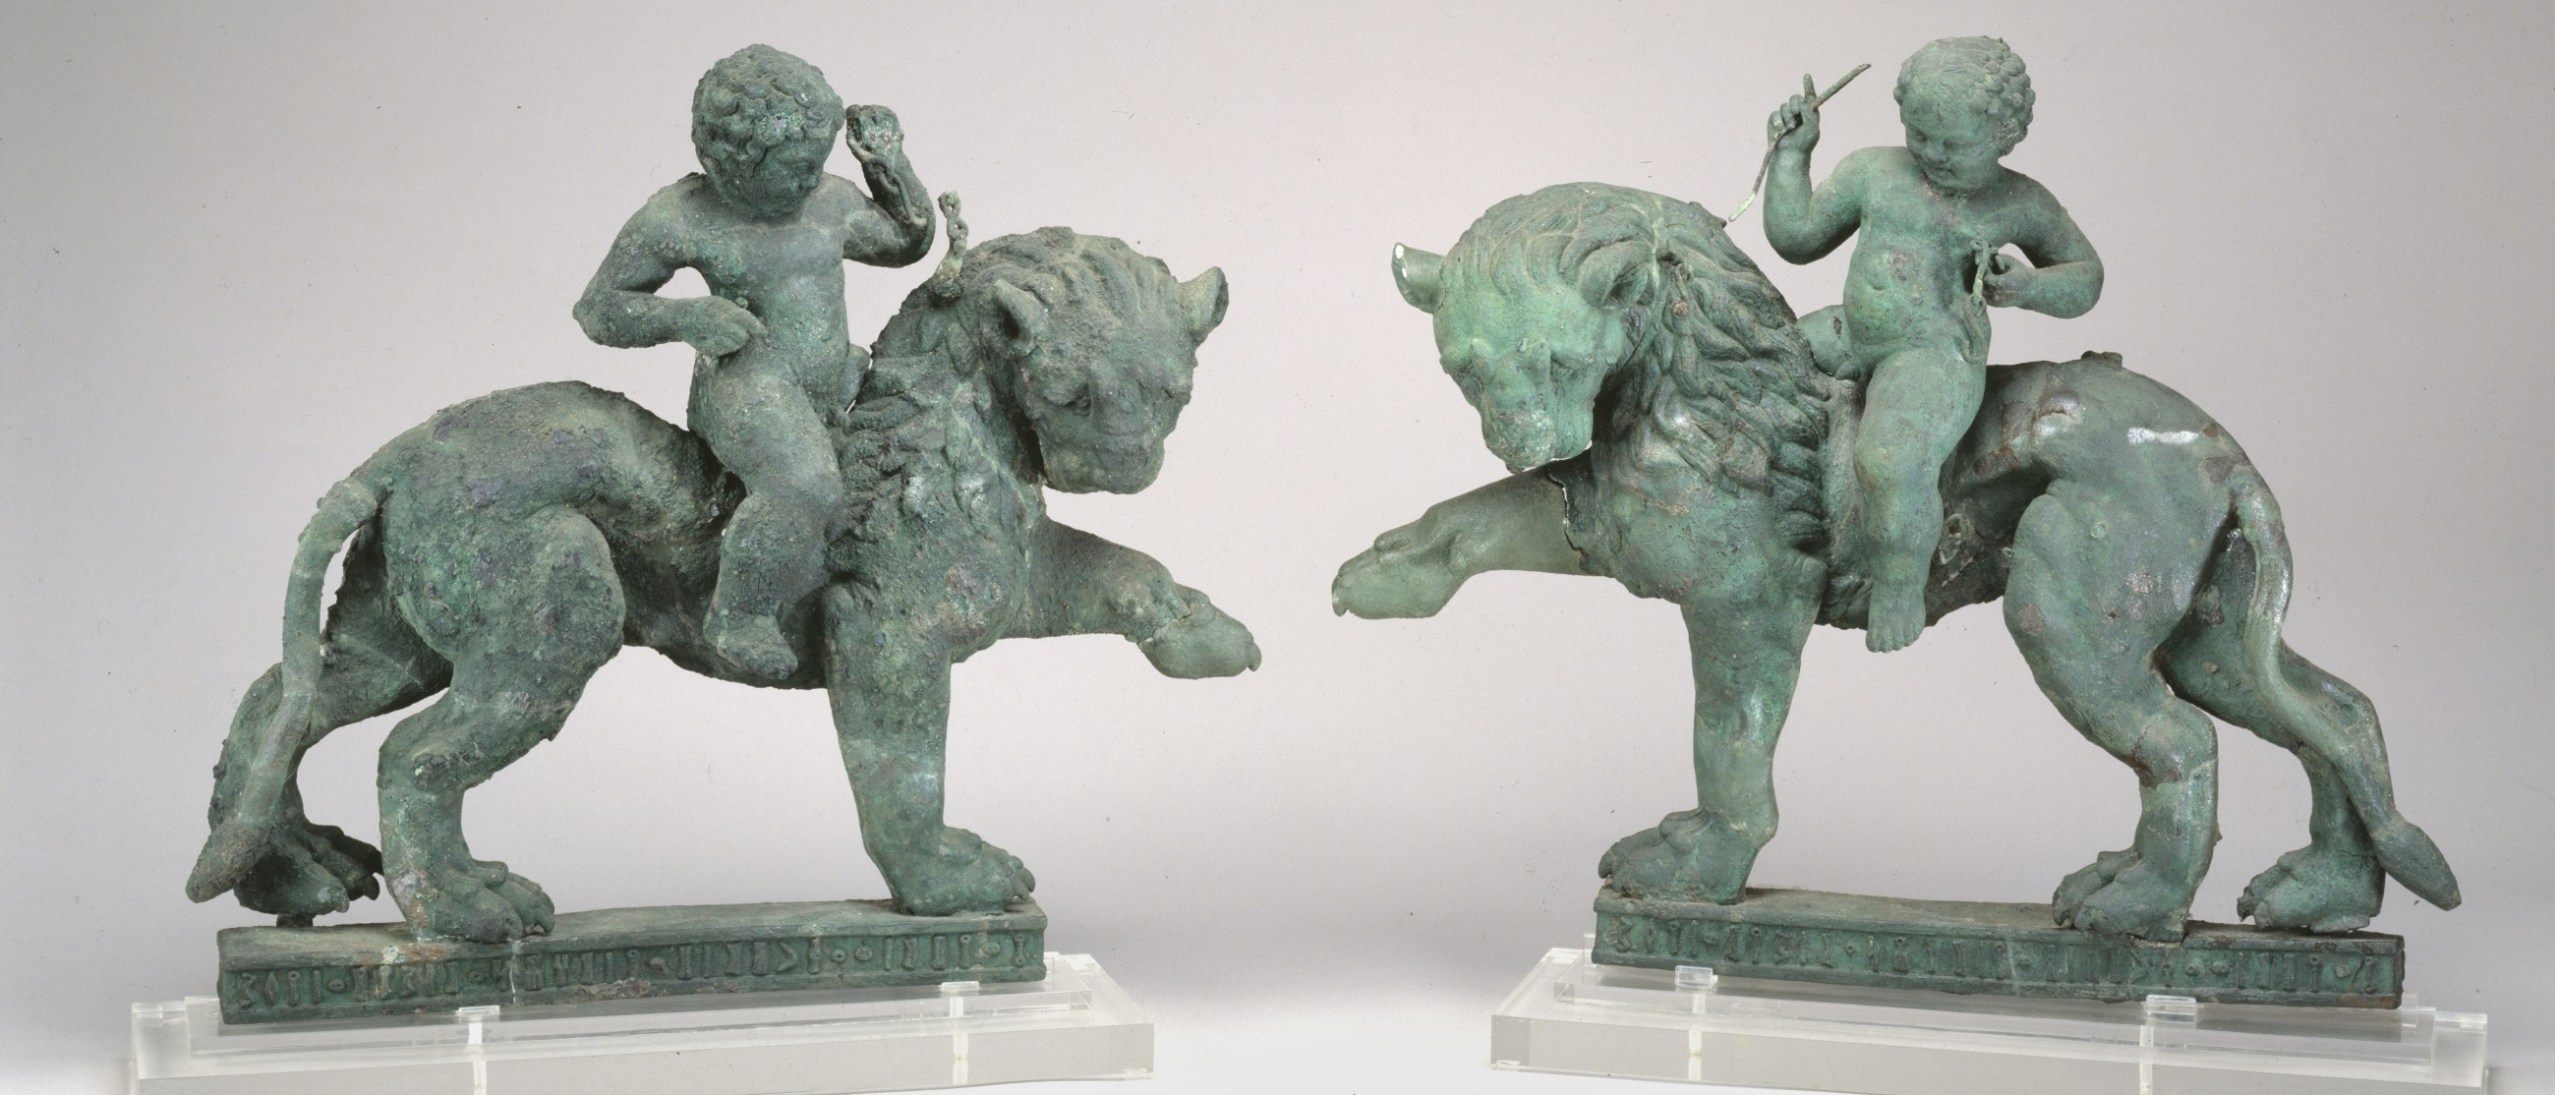 Image detail, Pair of lions with erotes as riders; Figure; early 1st century BCE-mid 1st century CE; Bronze; Yemen; Gift of The American Foundation for the Study of Man (Wendell and Merilyn Phillips Collection); Arthur M. Sackler Gallery S2013.2.77.1-2.